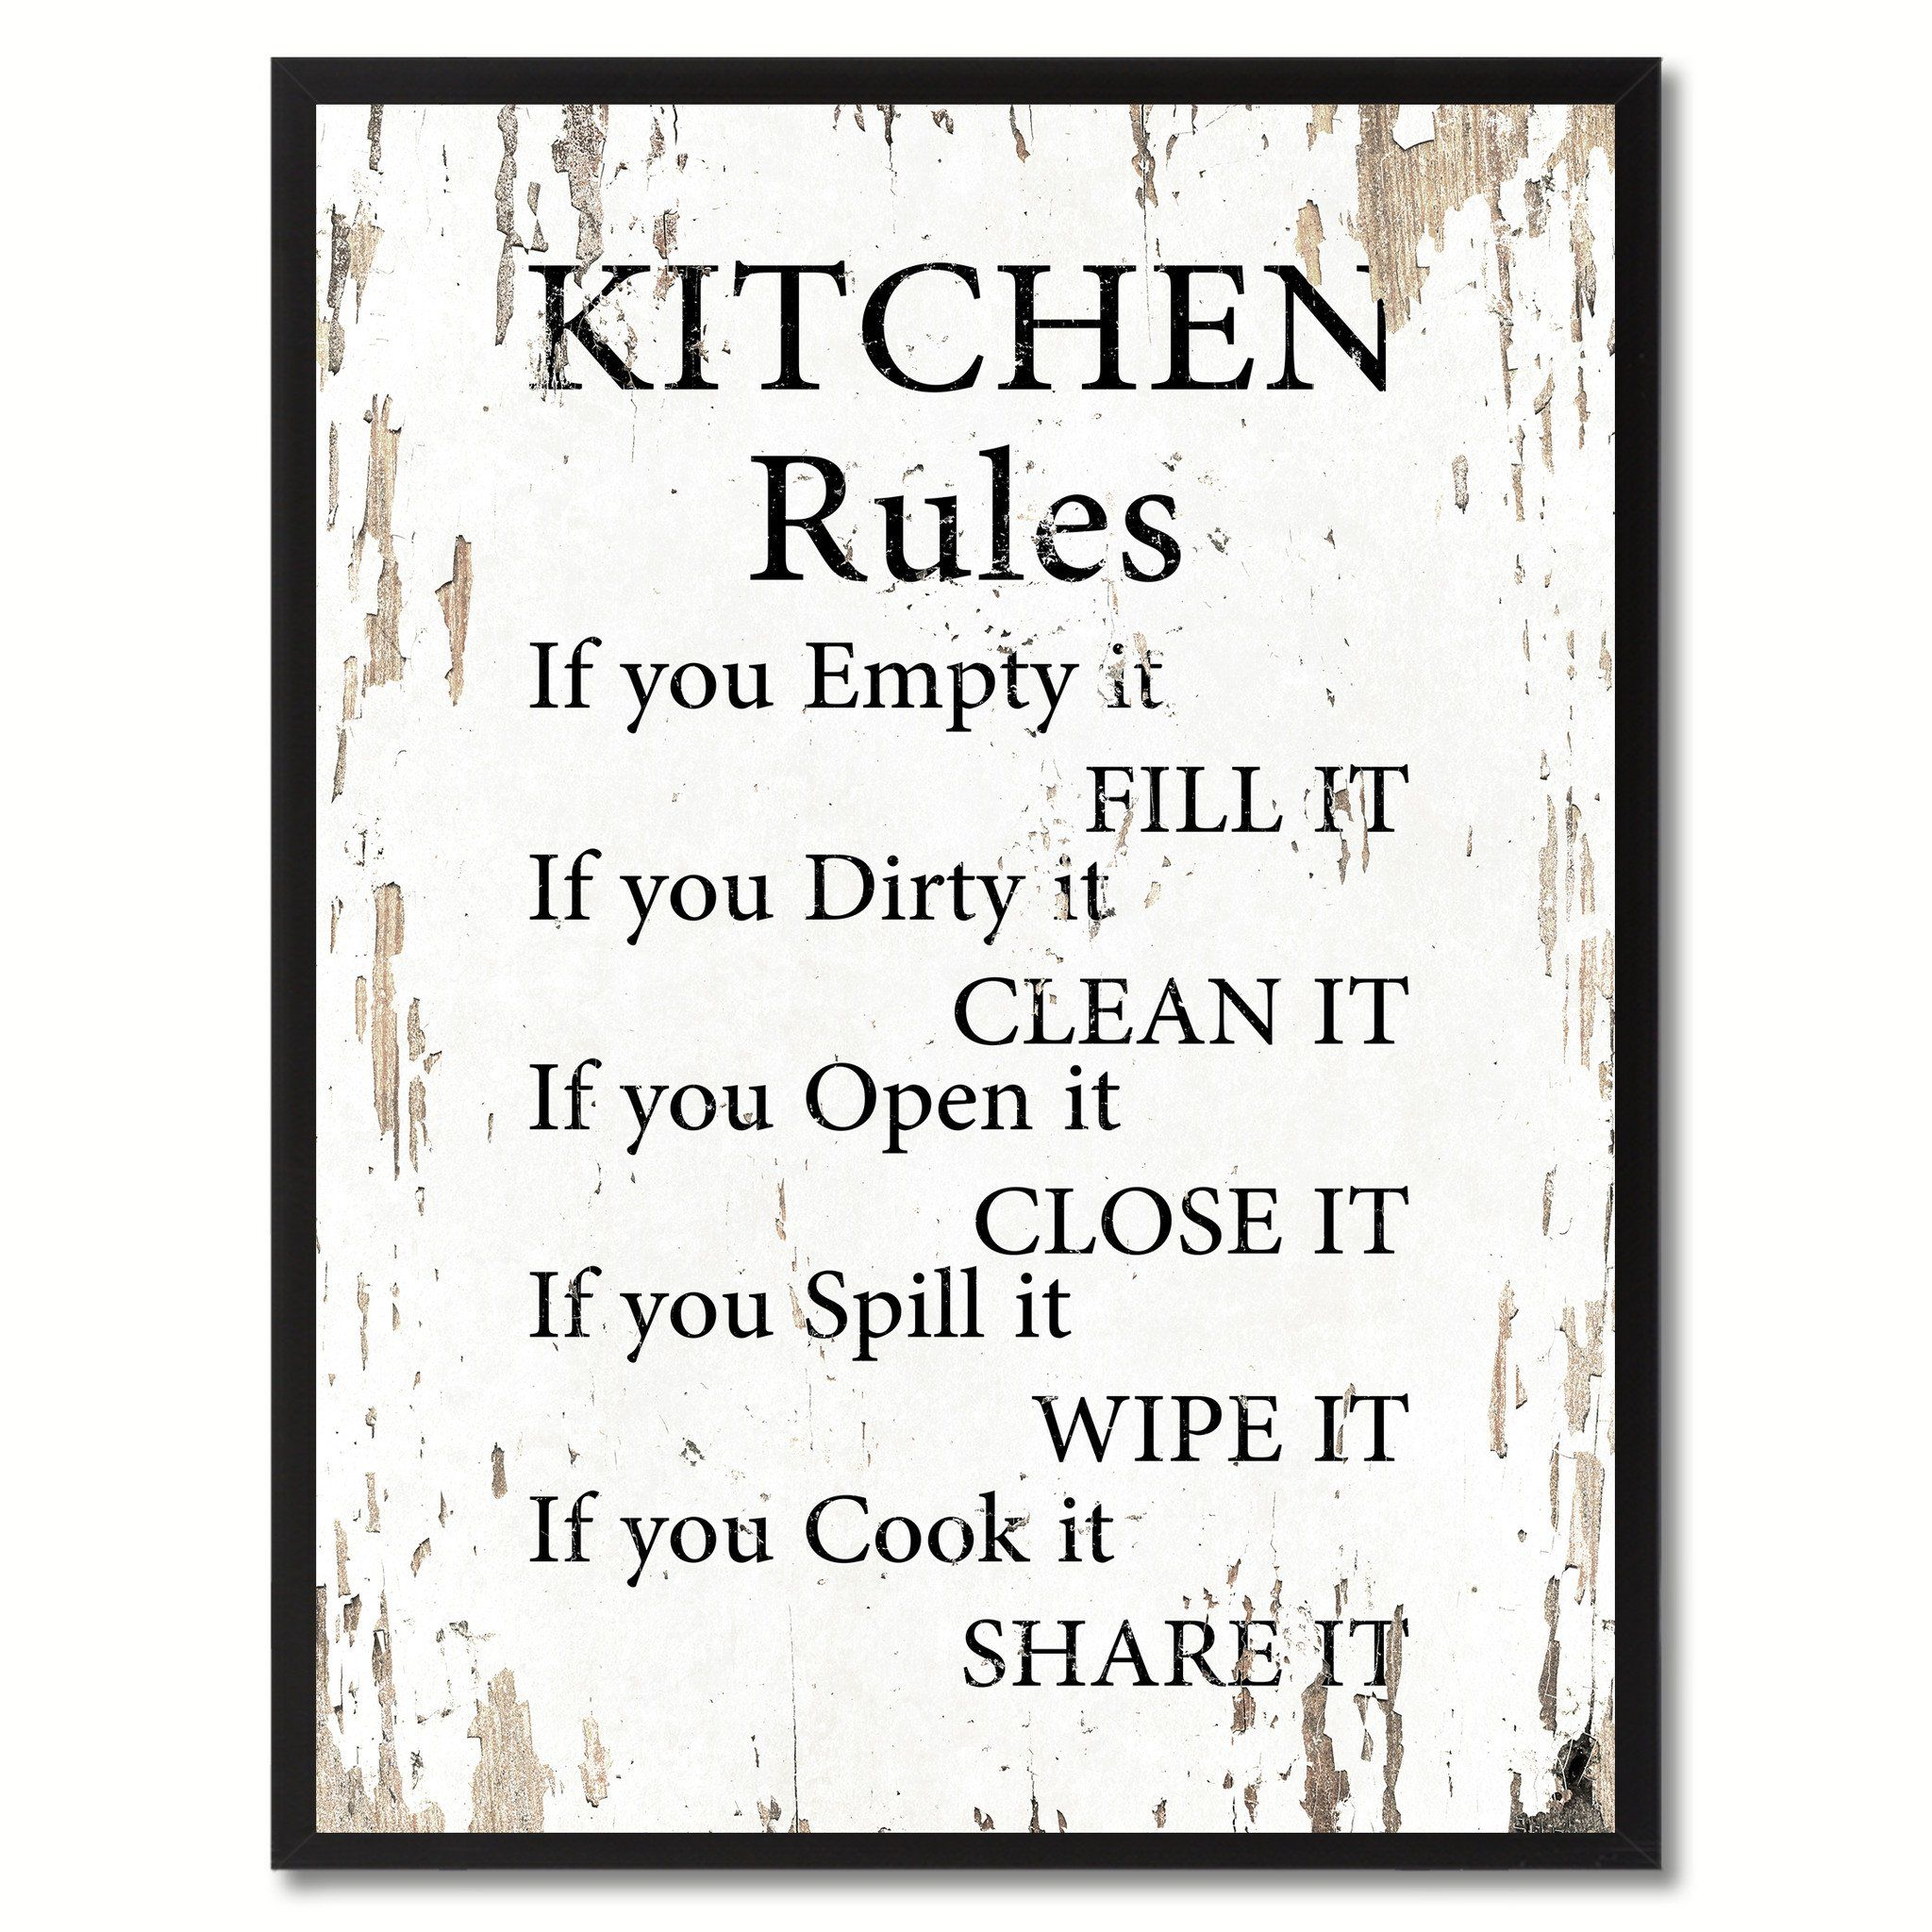 Kitchen Rules Saying Canvas Print, Black Picture Frame ...